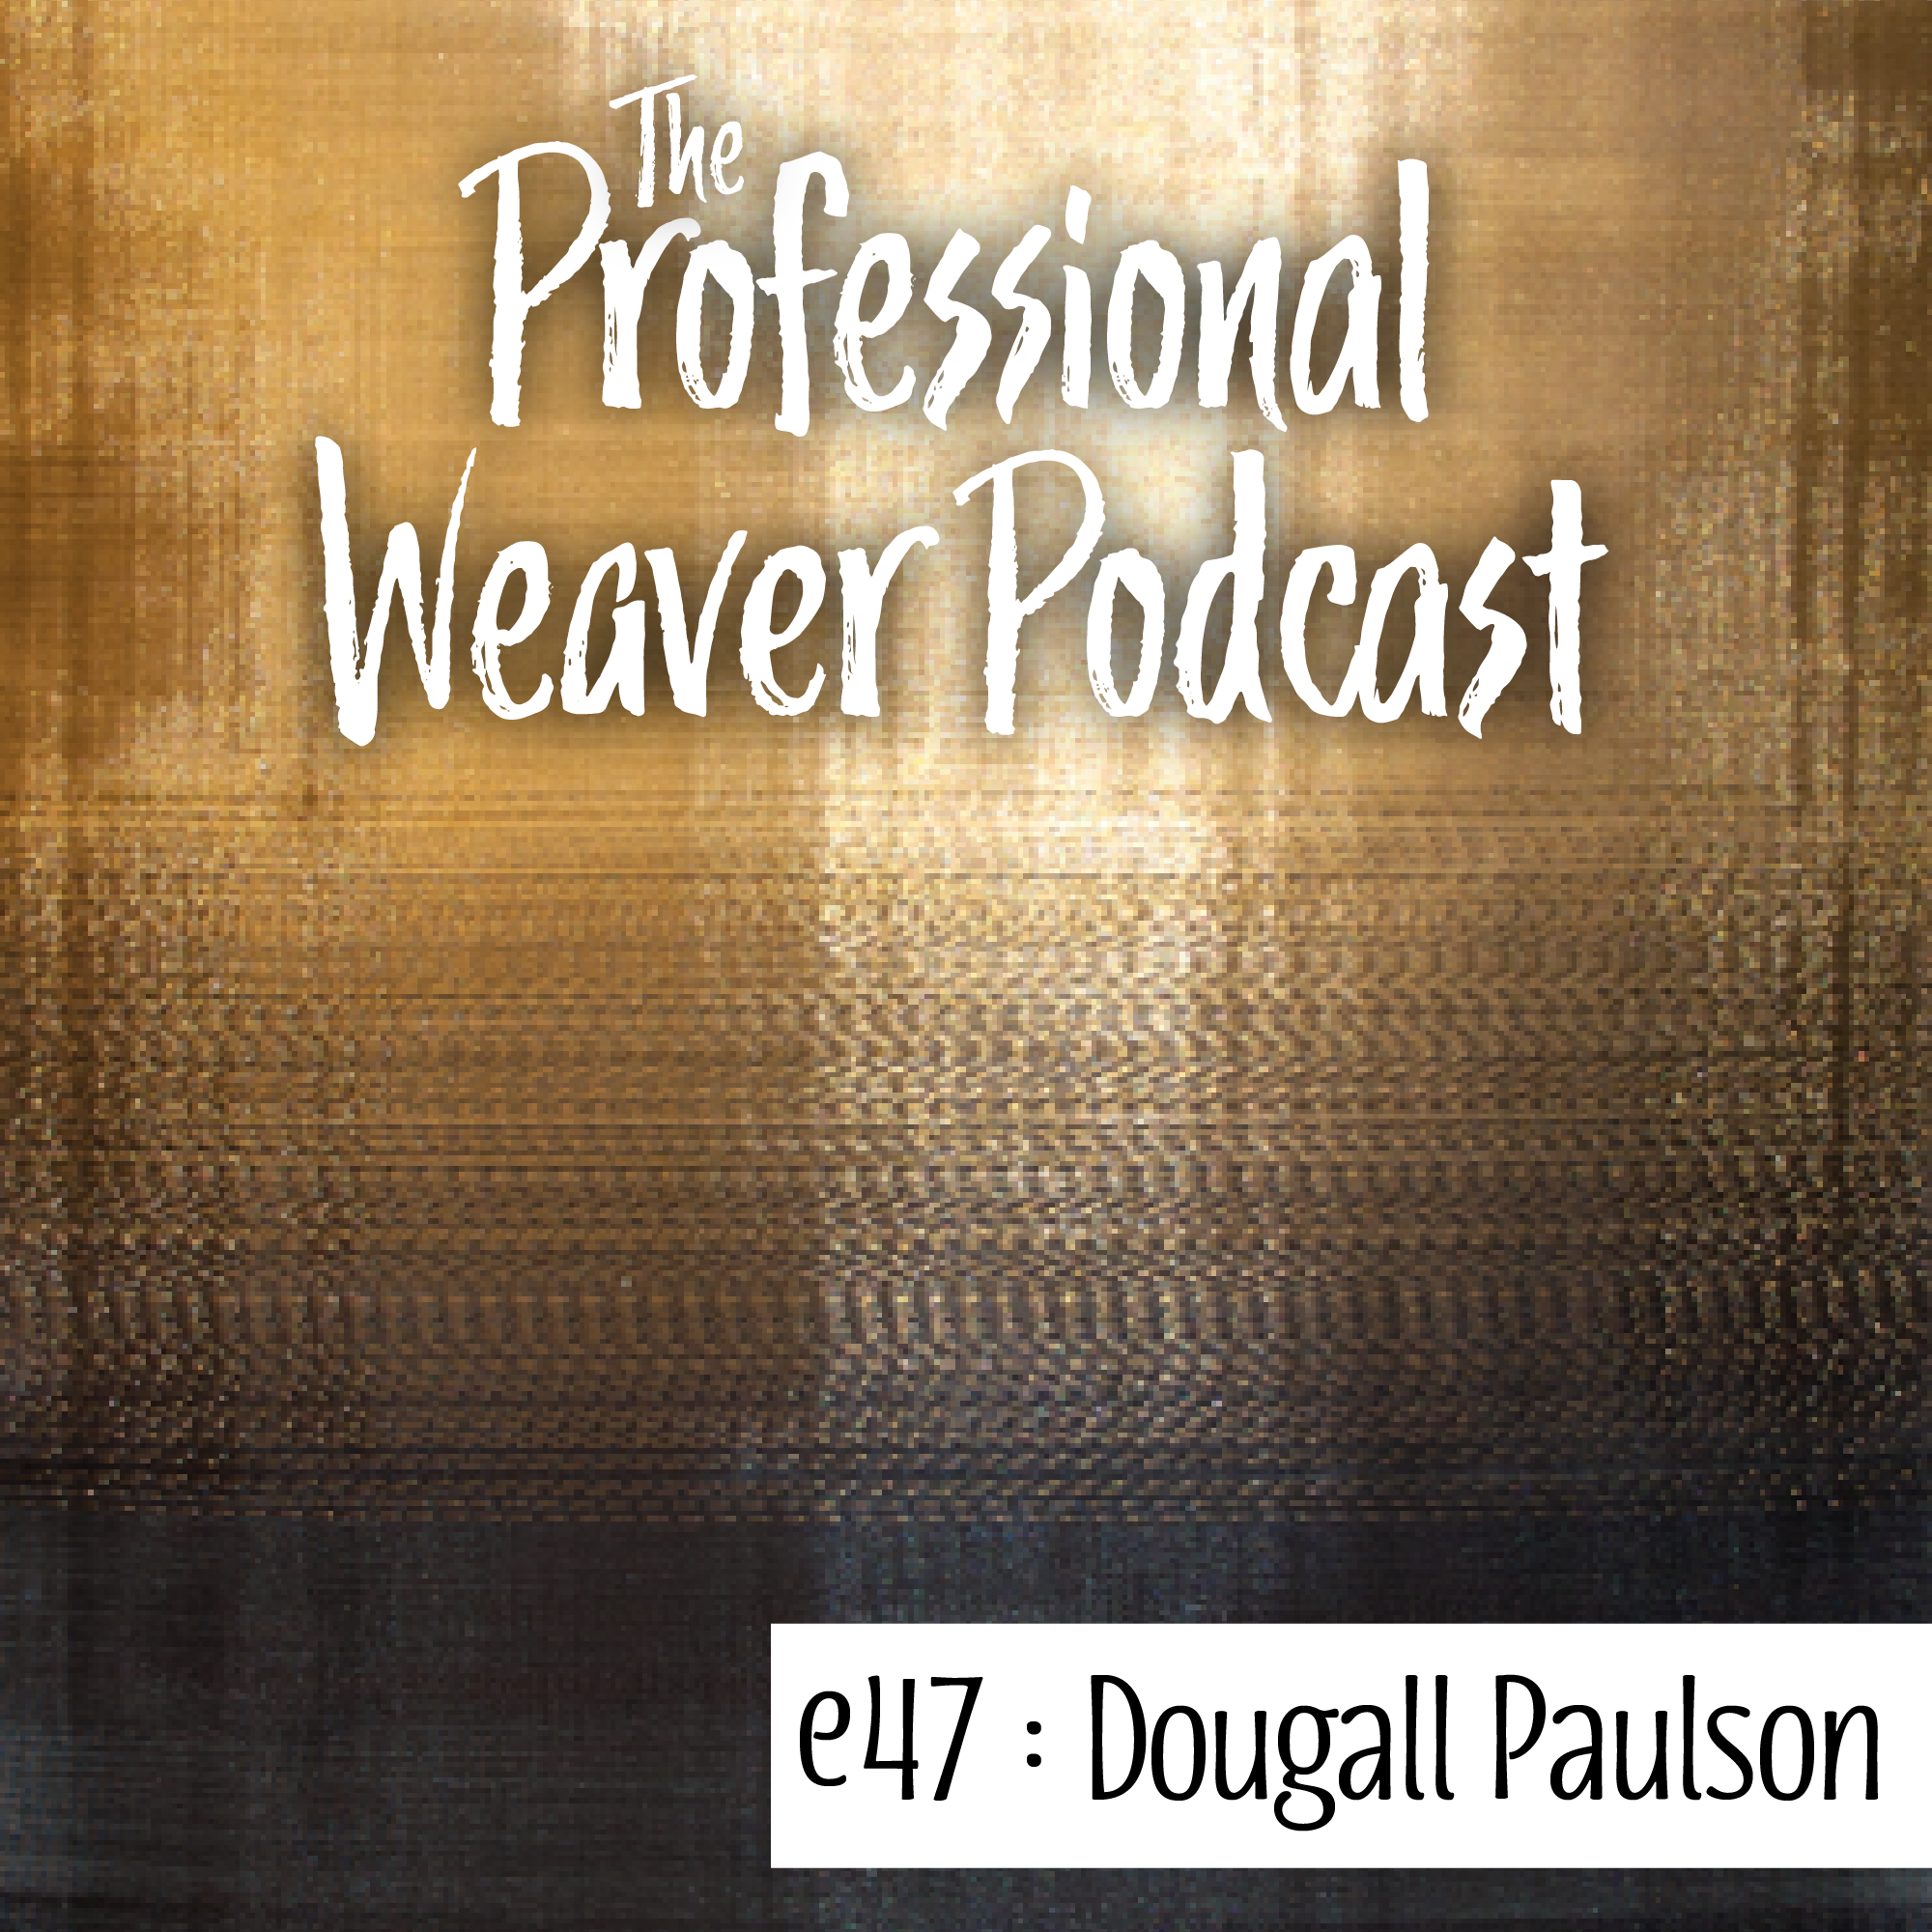 S1E17 : Sean Dougall & Andrew Paulson on growing and developing their design practice, the challenges of weaving with metal, what inspires them to keep exploring, and more.